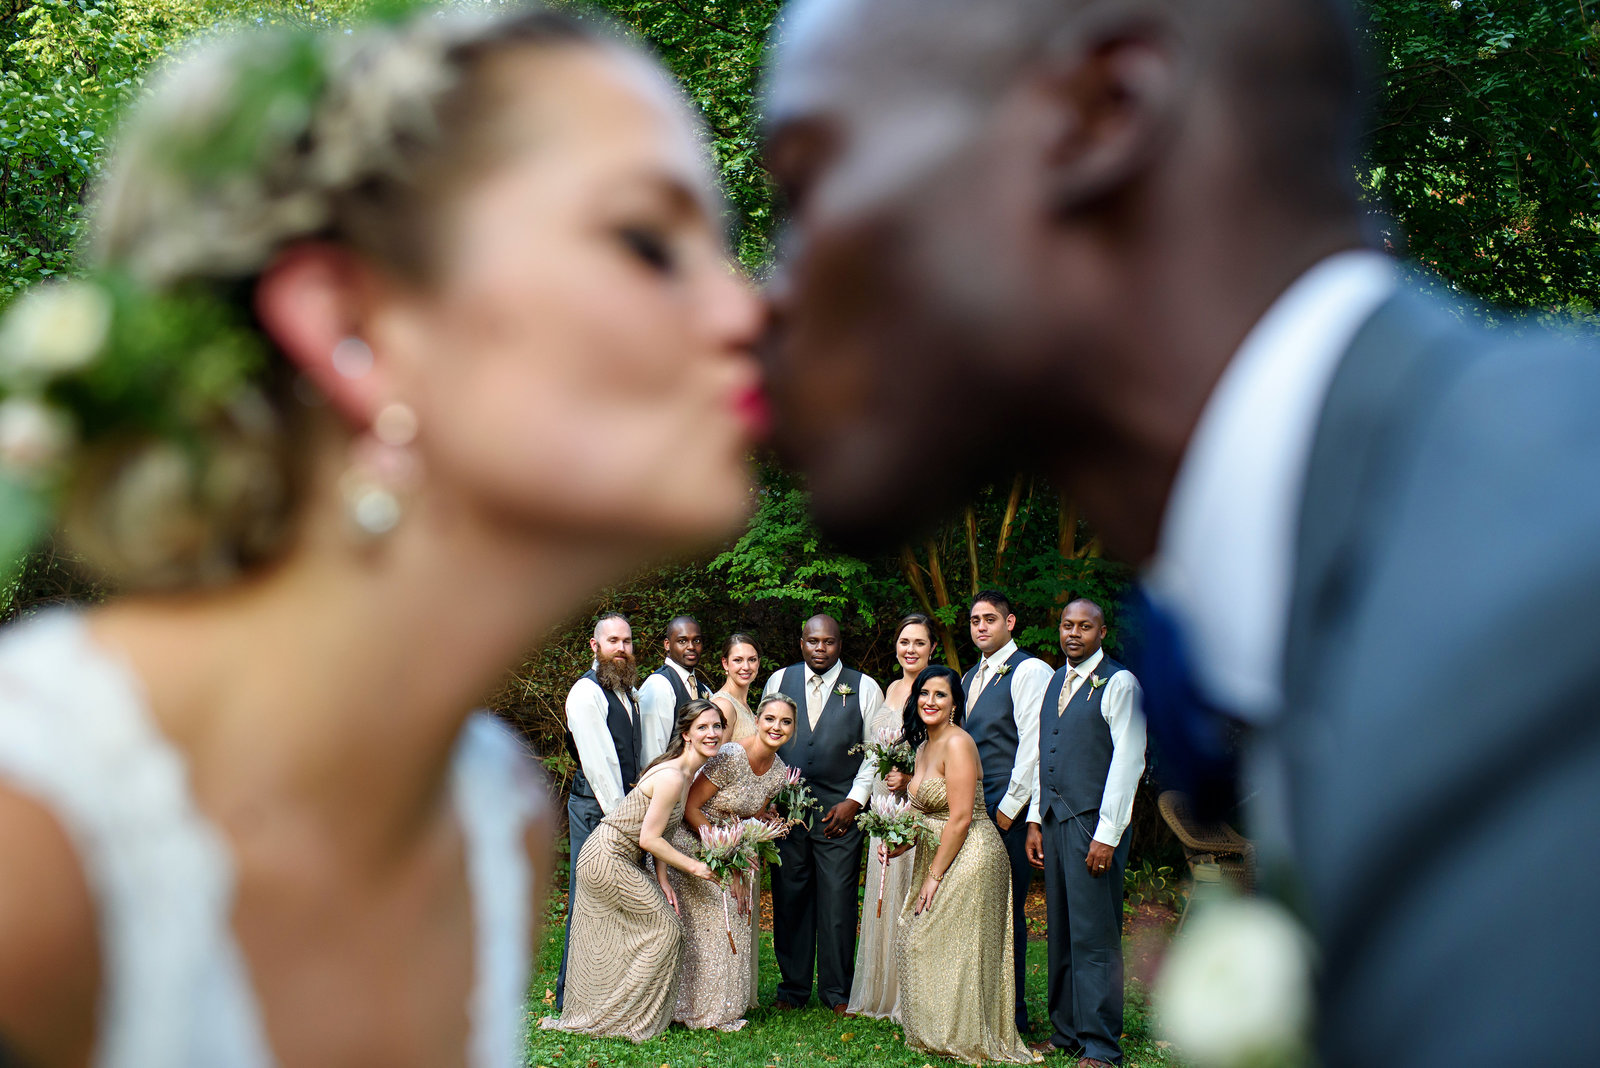 The wedding party in between the out of focus bride and groom kissing.